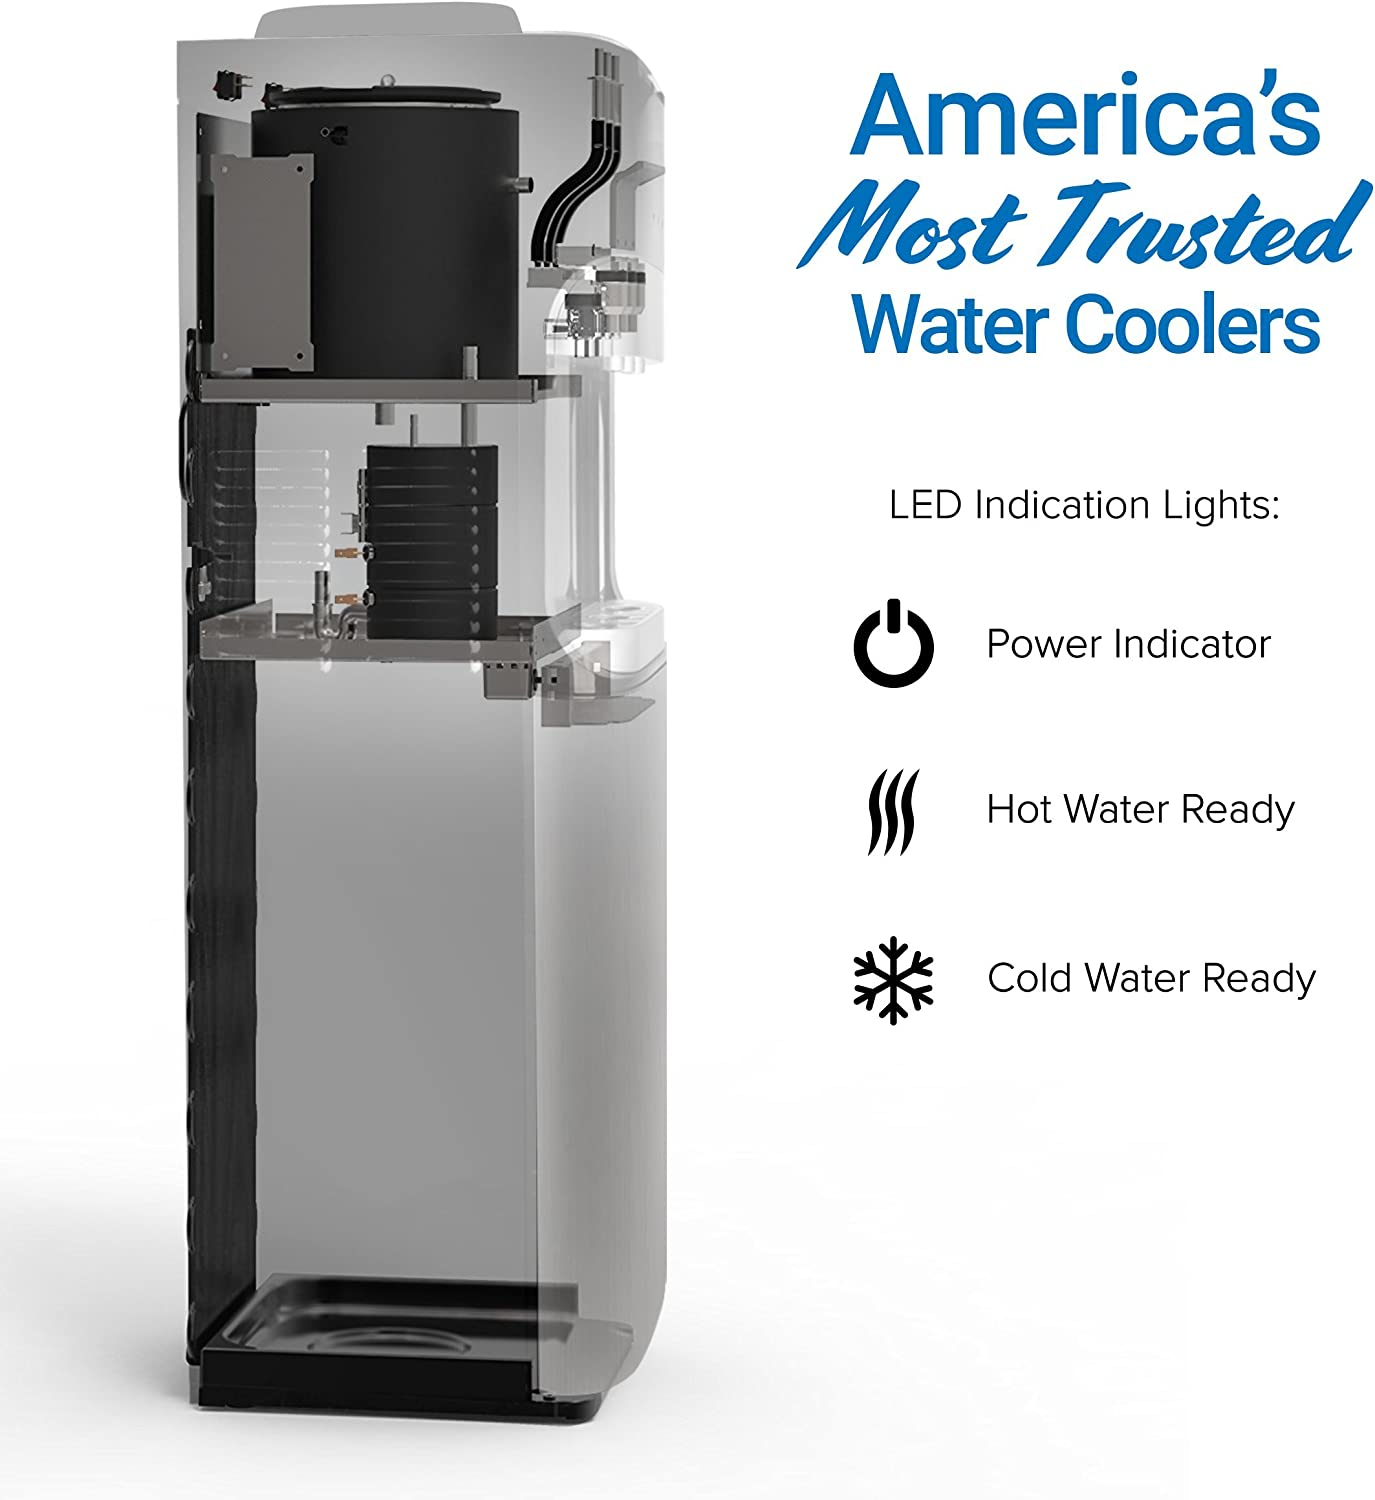 Brio CLTL420 Free-Standing Water Dispenser - 3 temperature modes